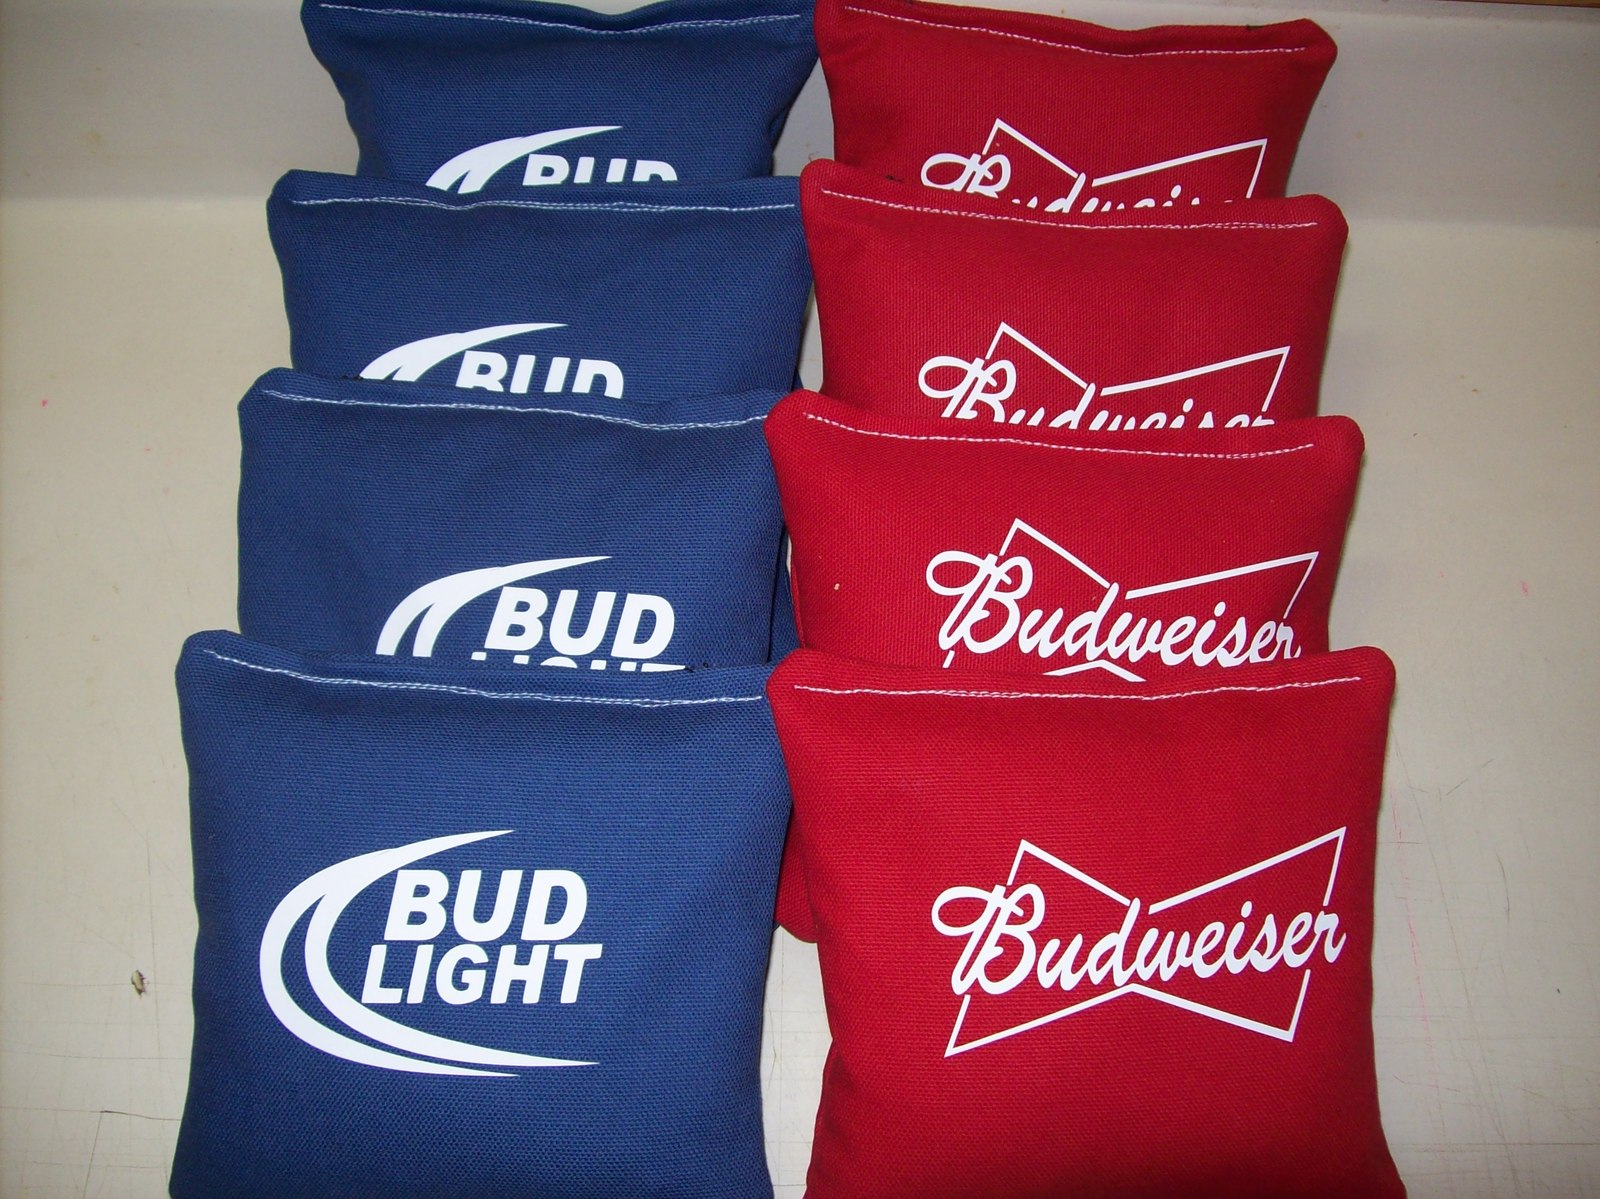 Bud light coupons printable 2018 : Bose deals black friday